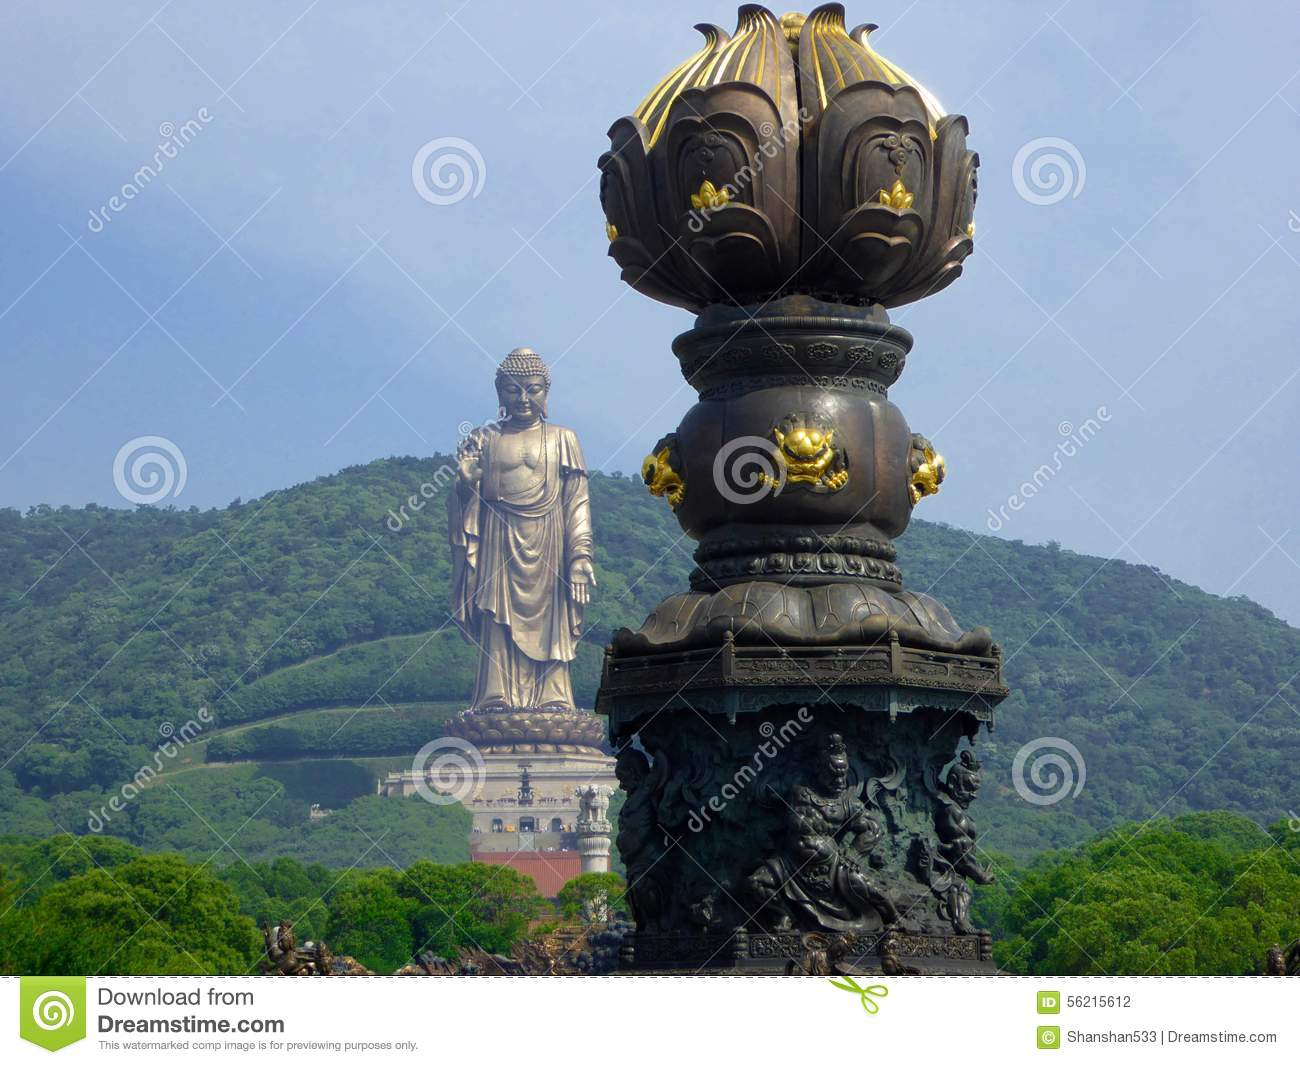 Giant Dragon Statue Grand Buddha Sculpture With Bathing By Nine Dragons In The